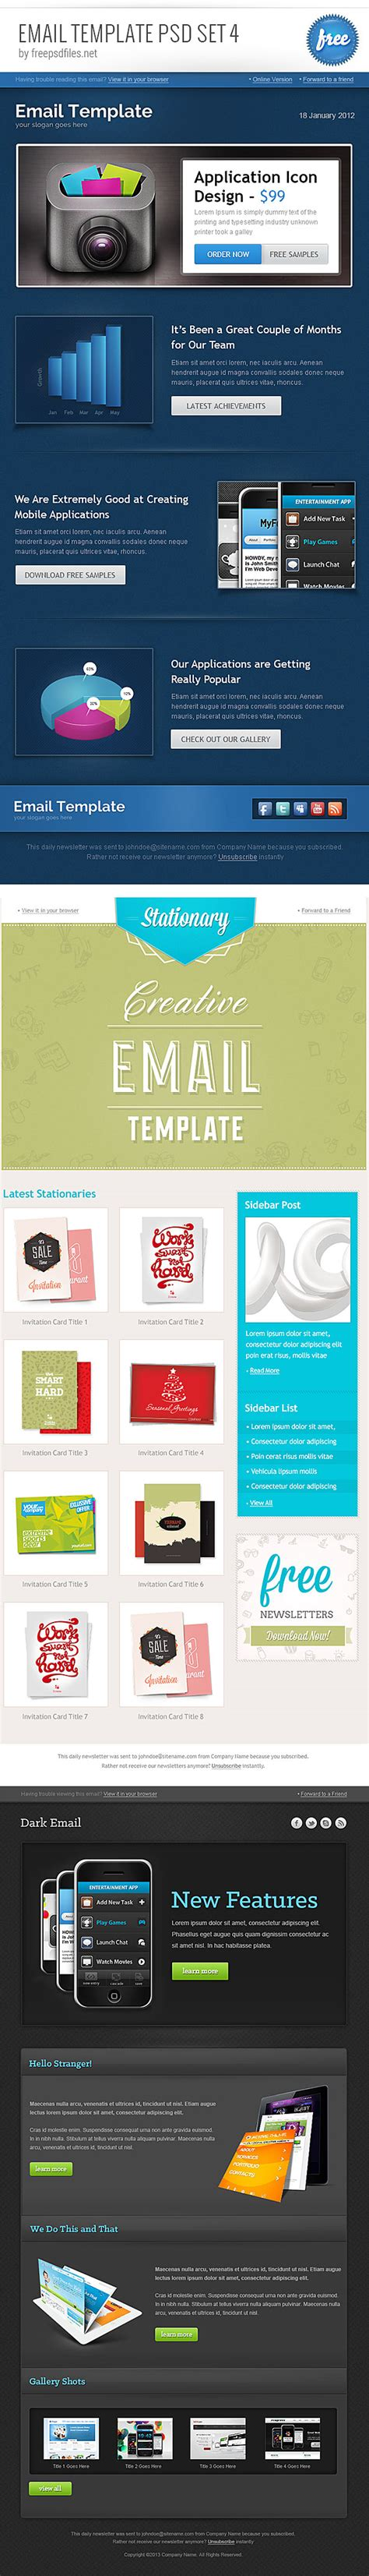 email template psd set 4 free psd files